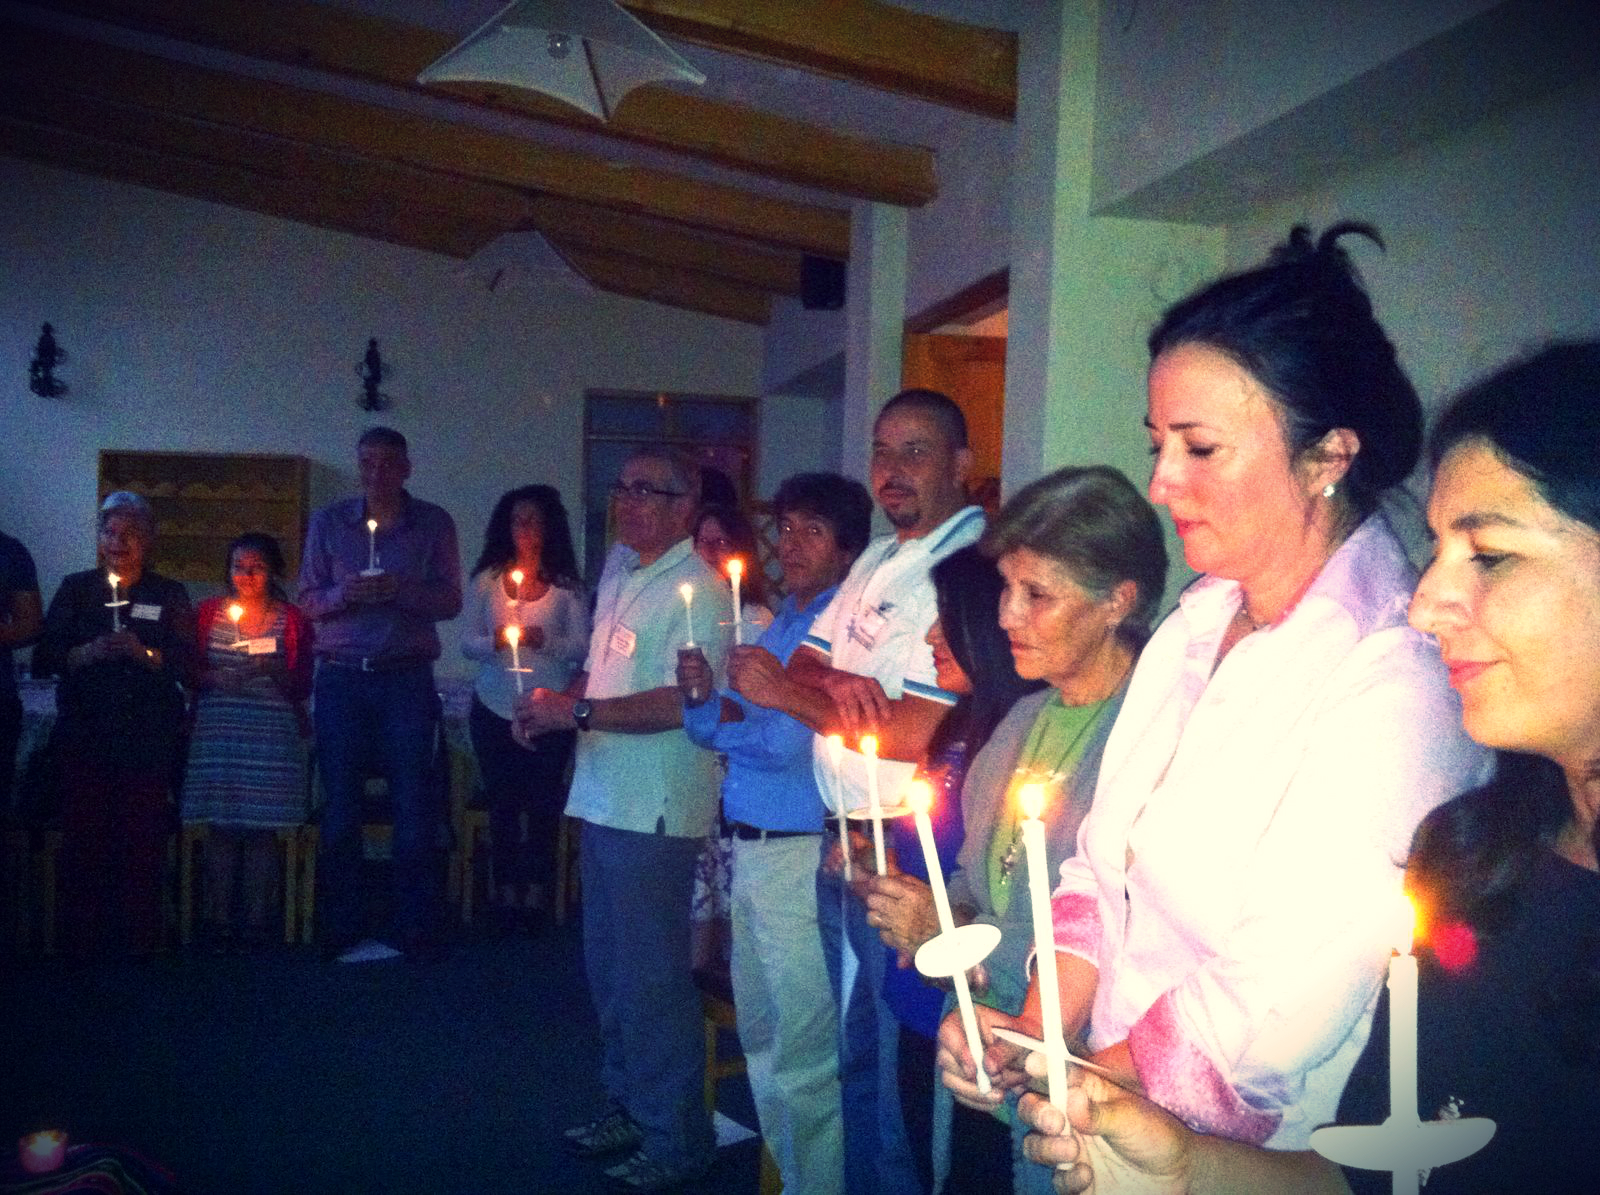 Missioners participating in the candle lighting ritual during the trip's opening ceremony.